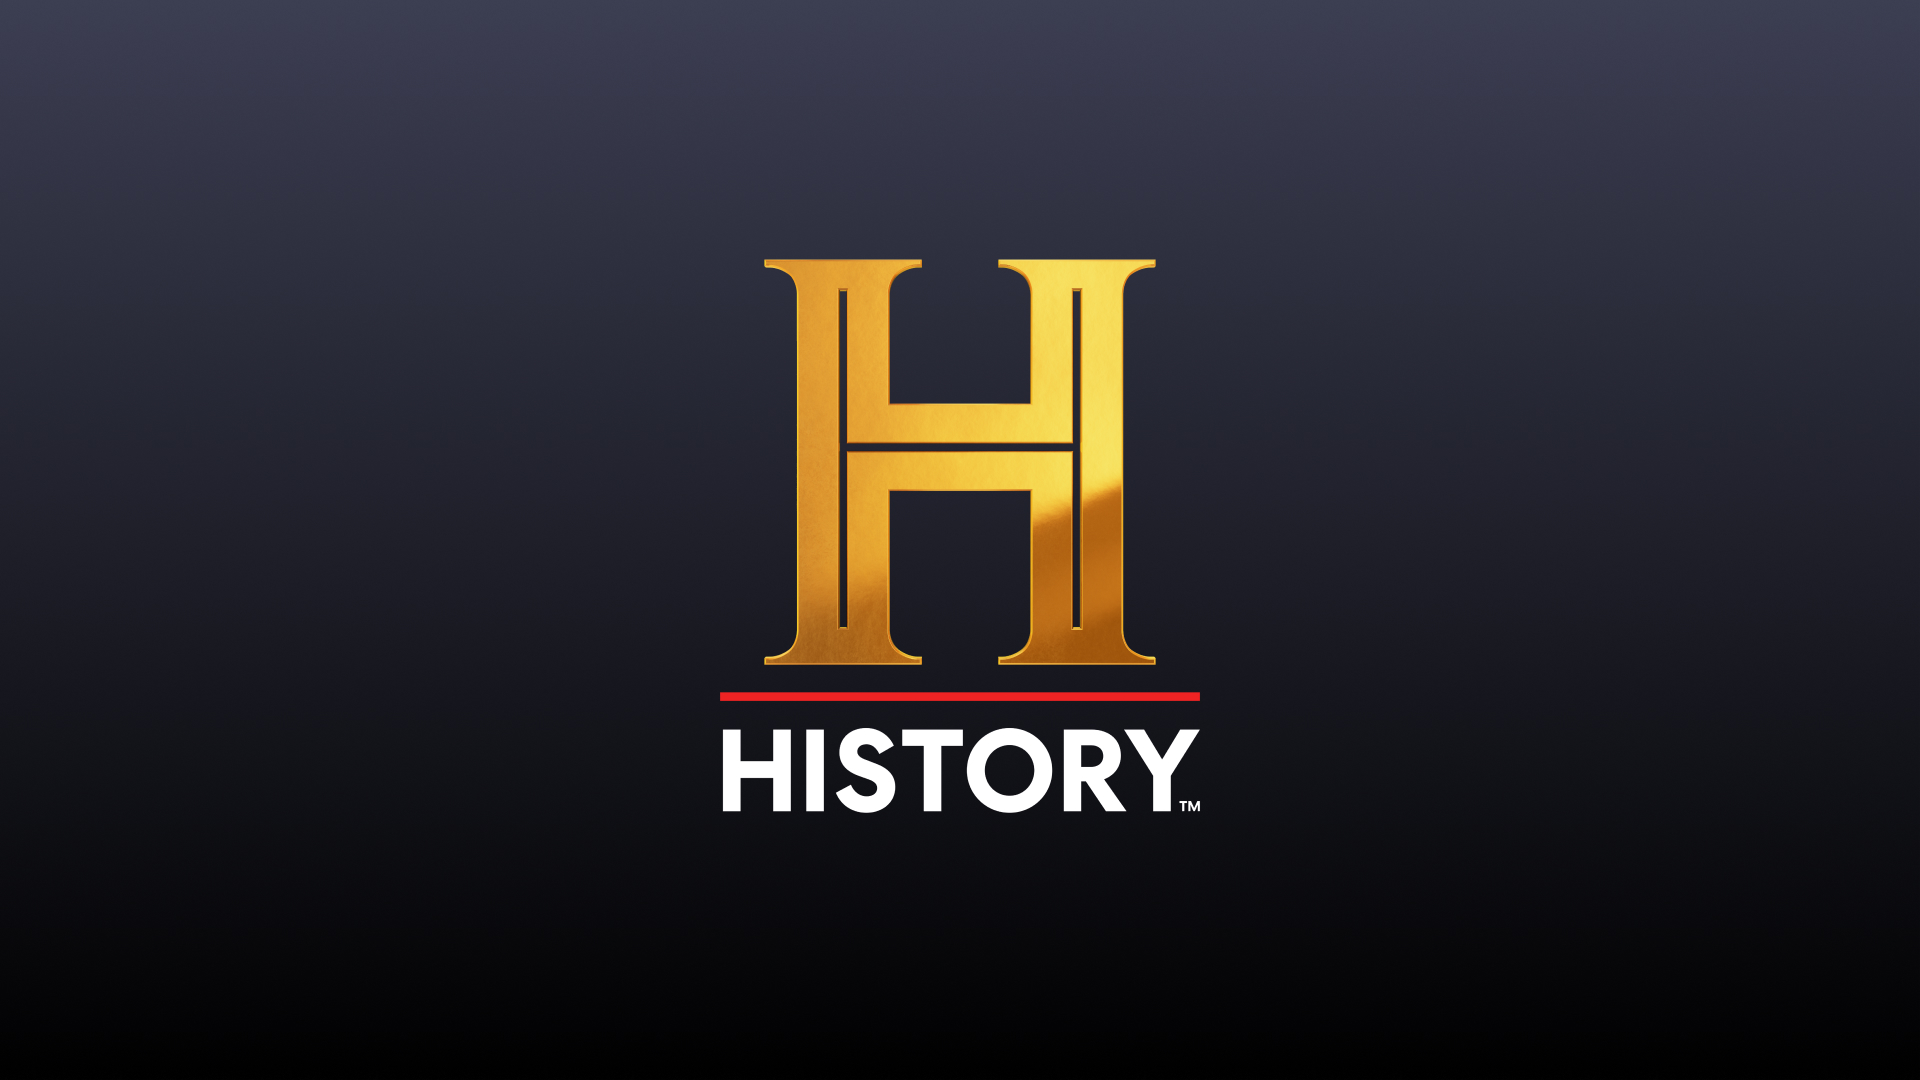 The symbol for the history channel